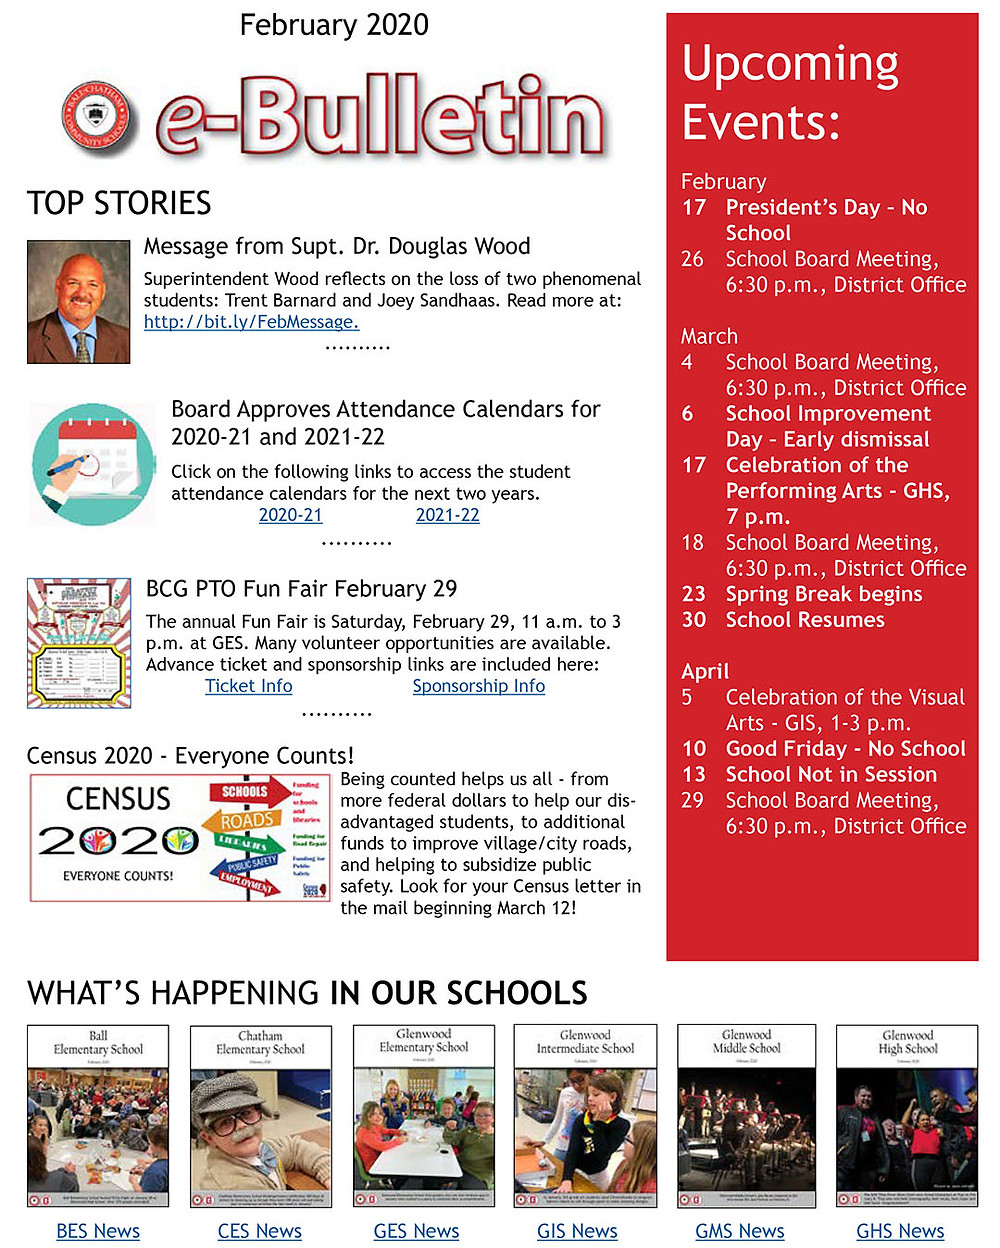 February eBulletin cover